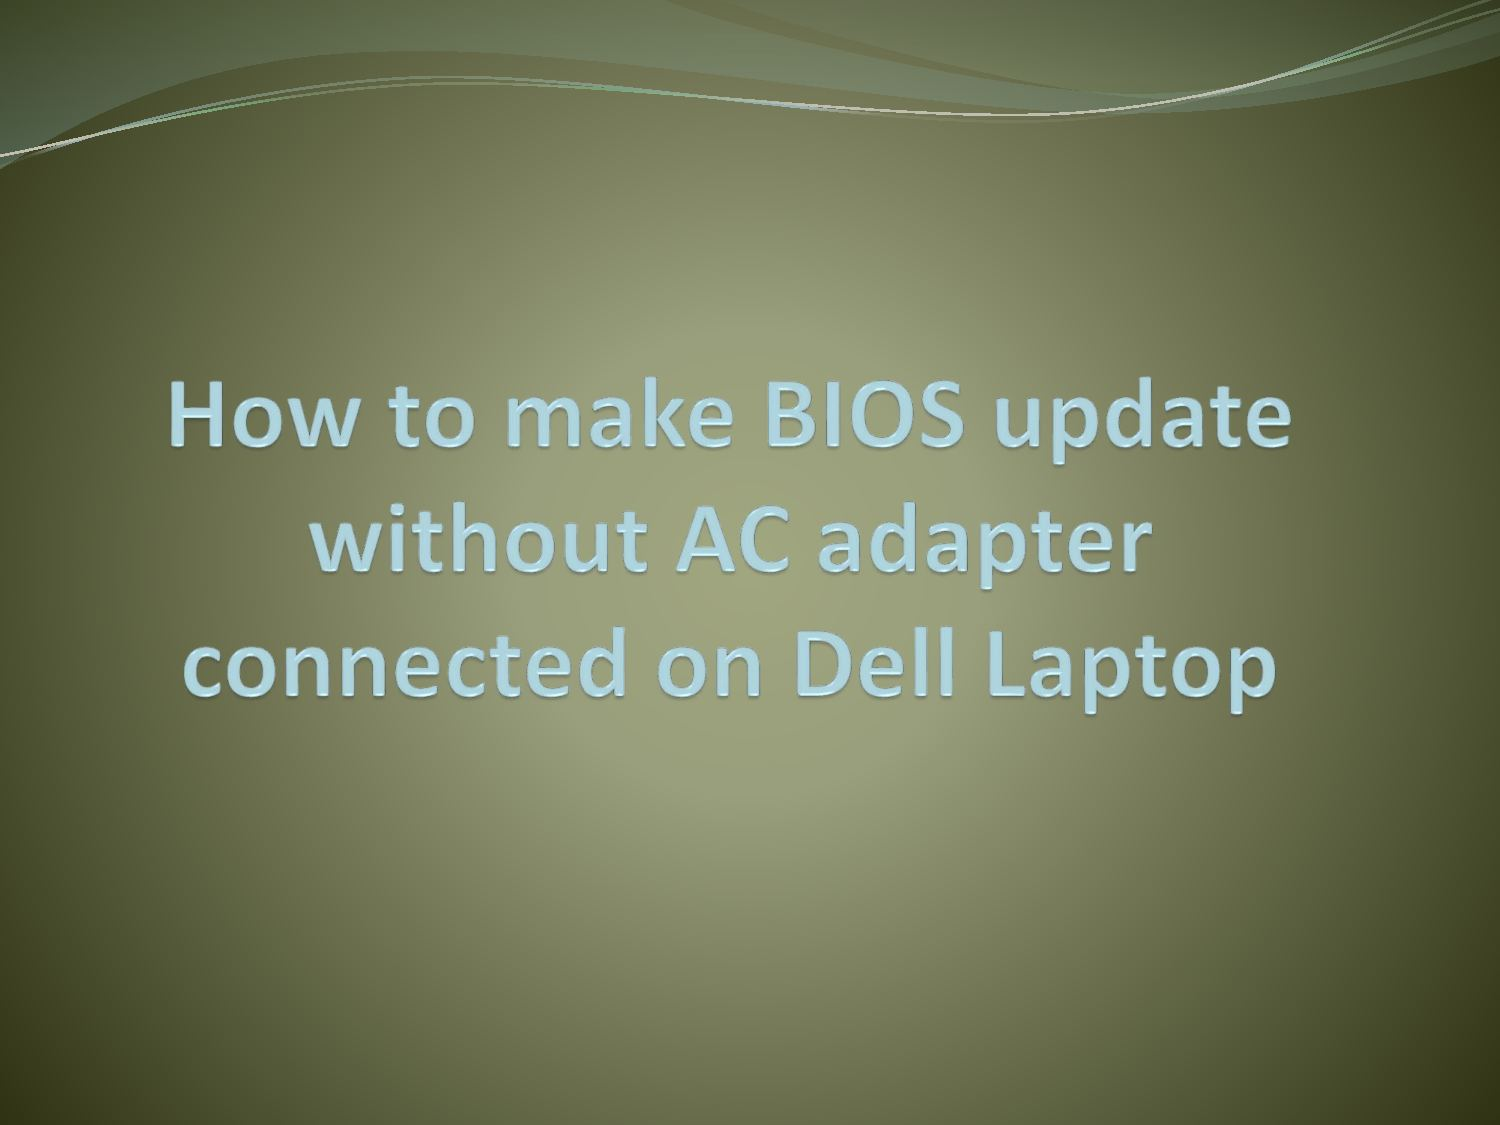 Calaméo - How To Make Bios Update Without Ac Adpter Connected On